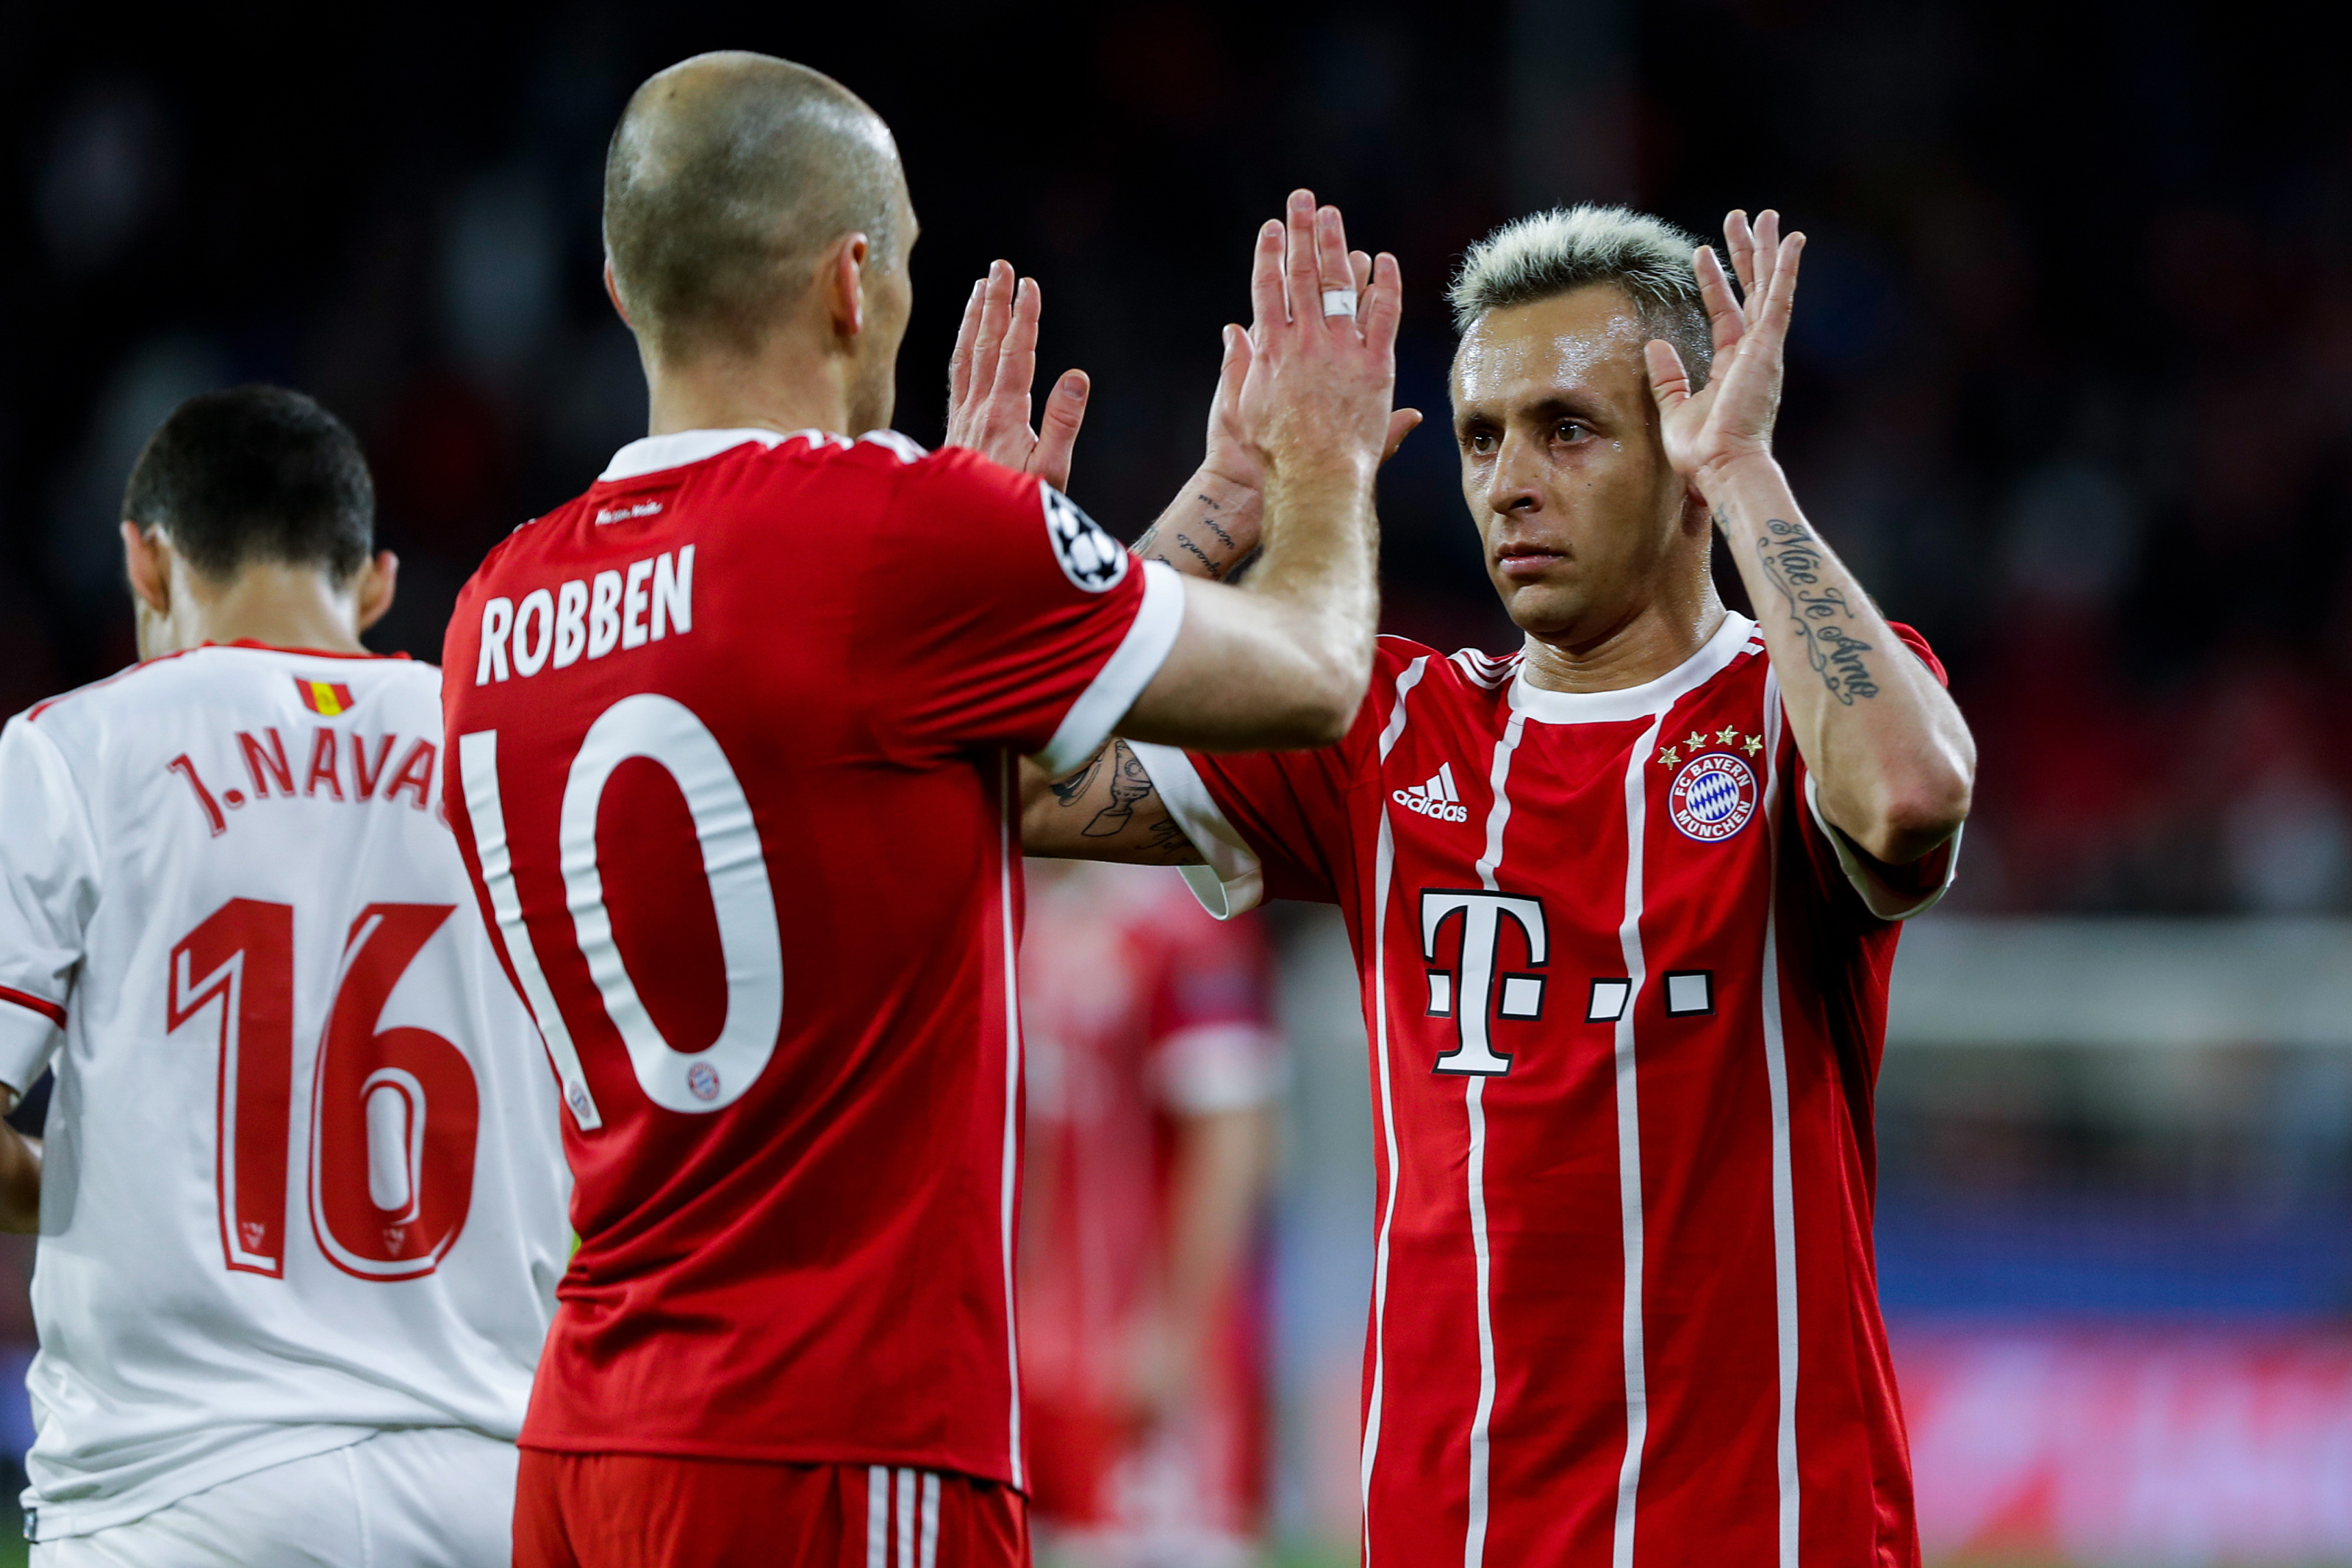 Arjen Robben and Rafinha reflect on their time at Bayern Munich